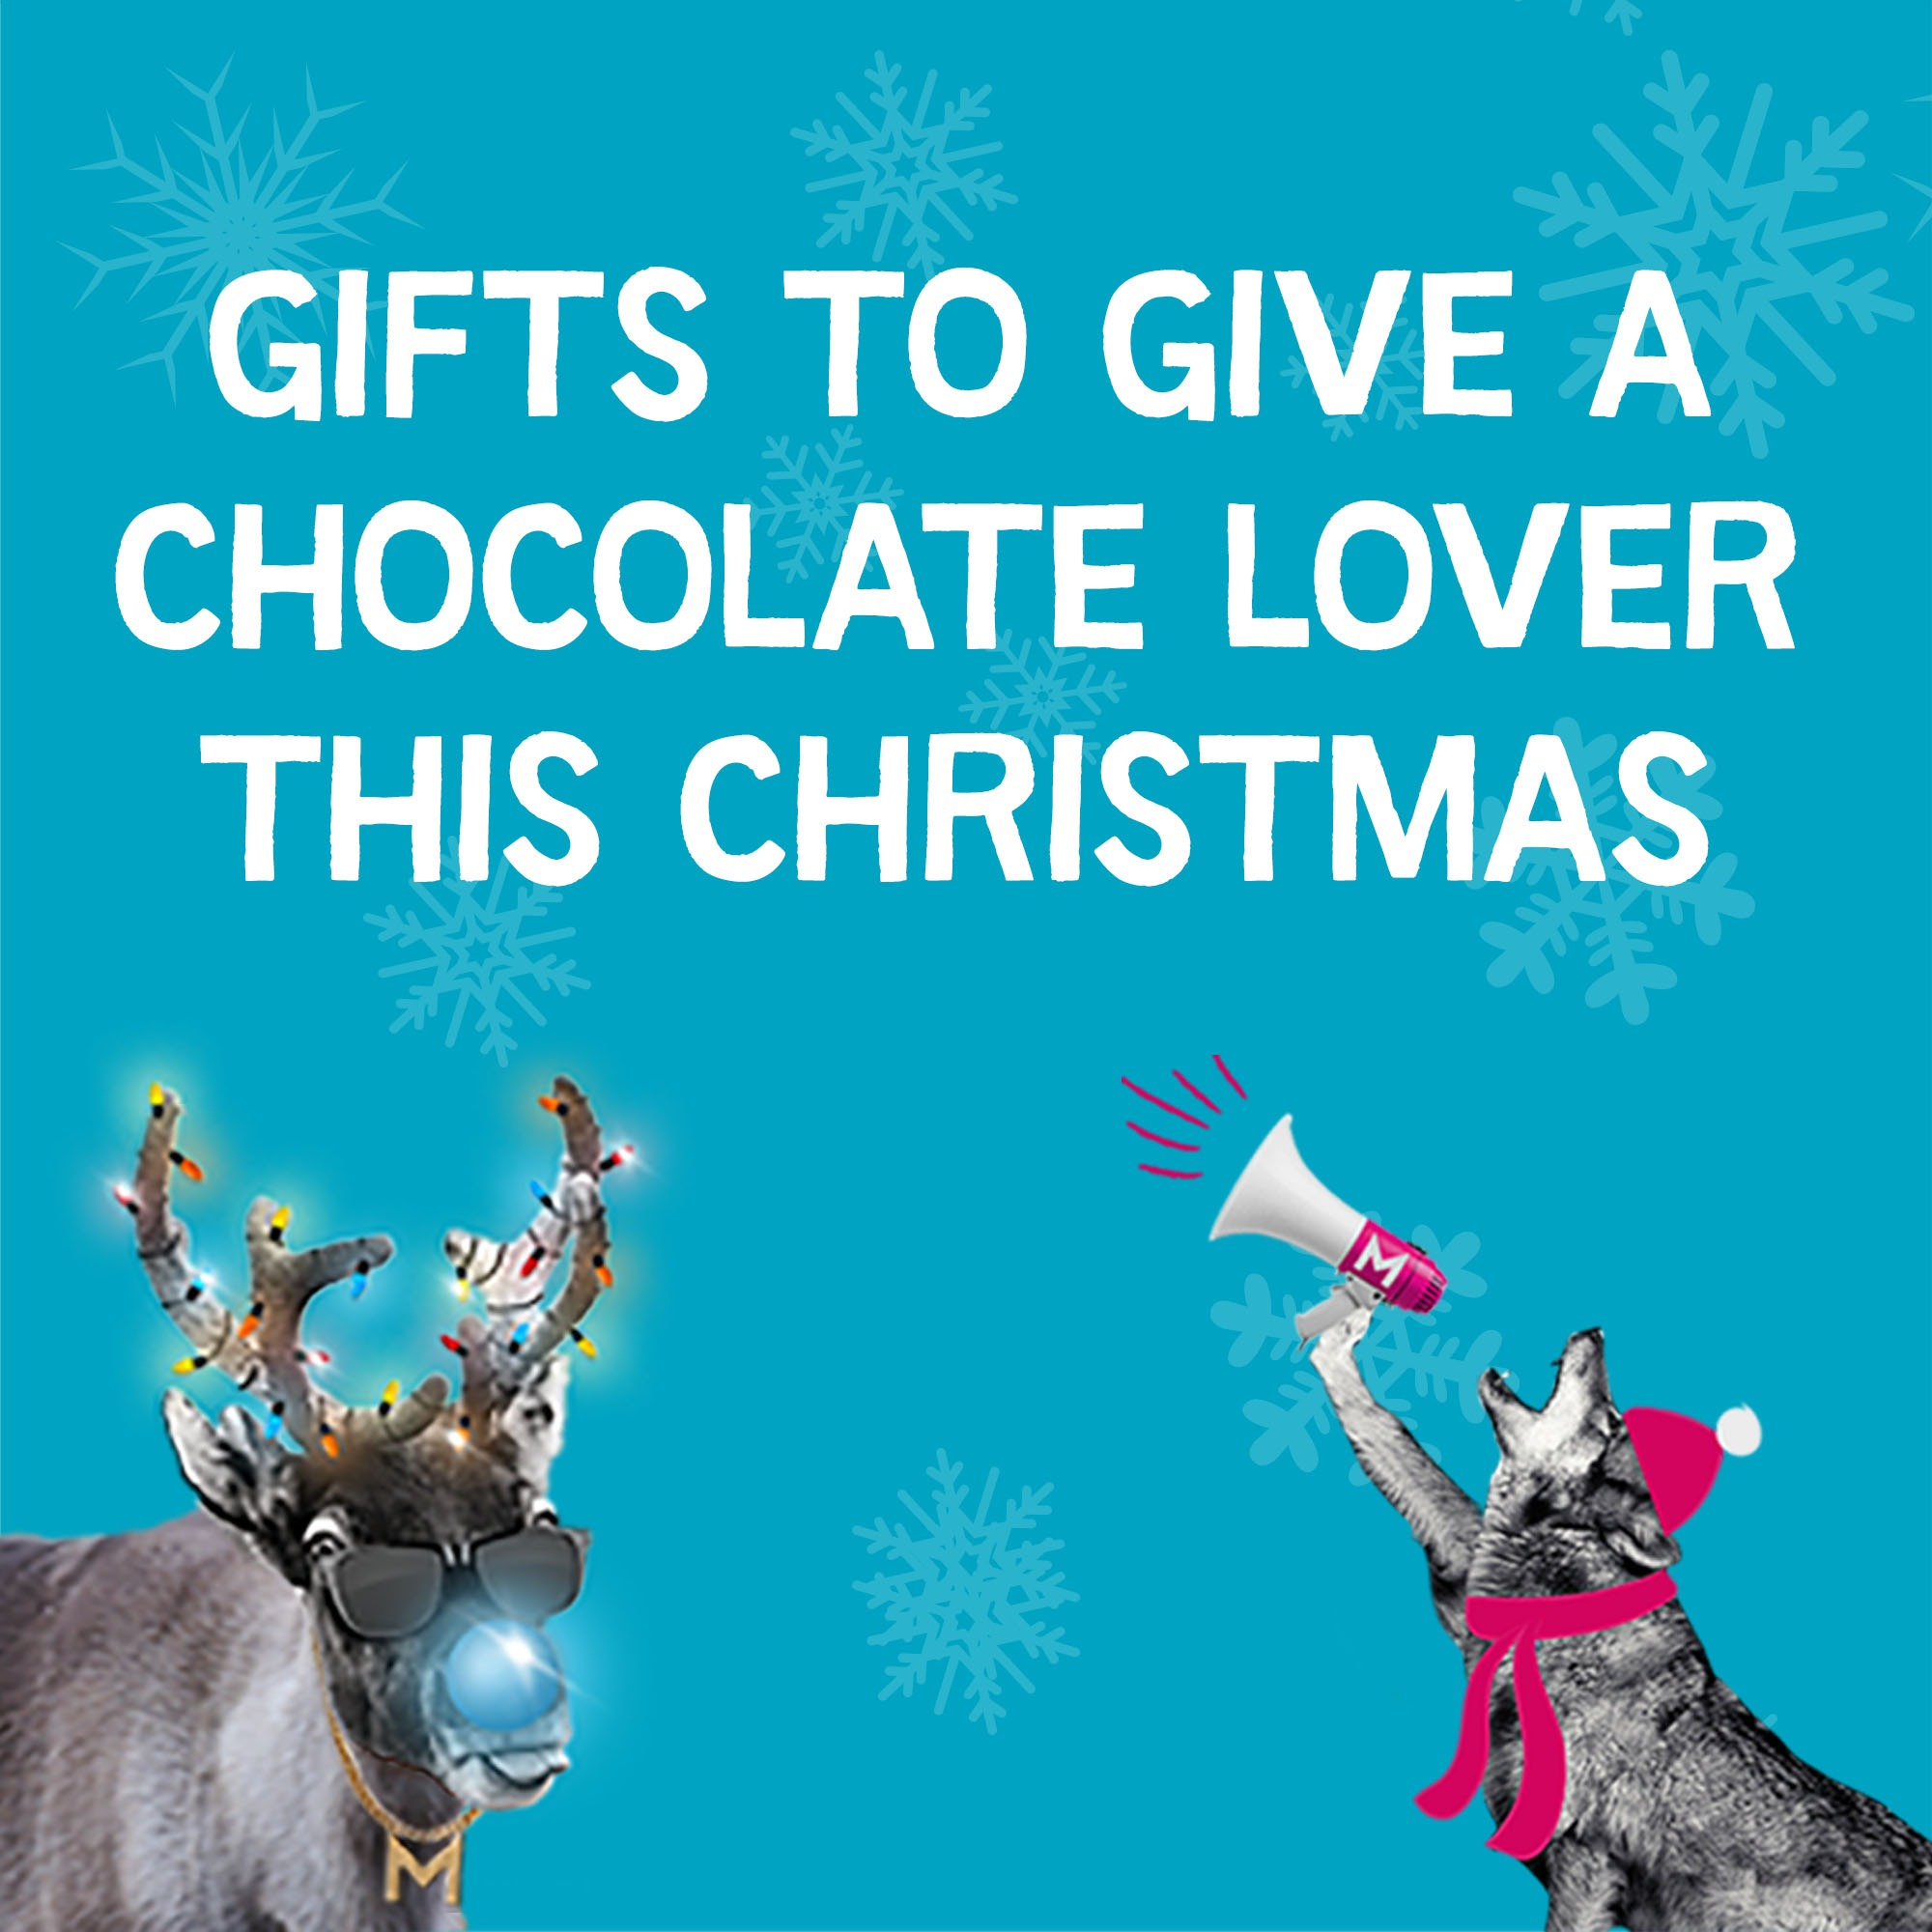 Gifts to Give a Chocolate Lover this Christmas